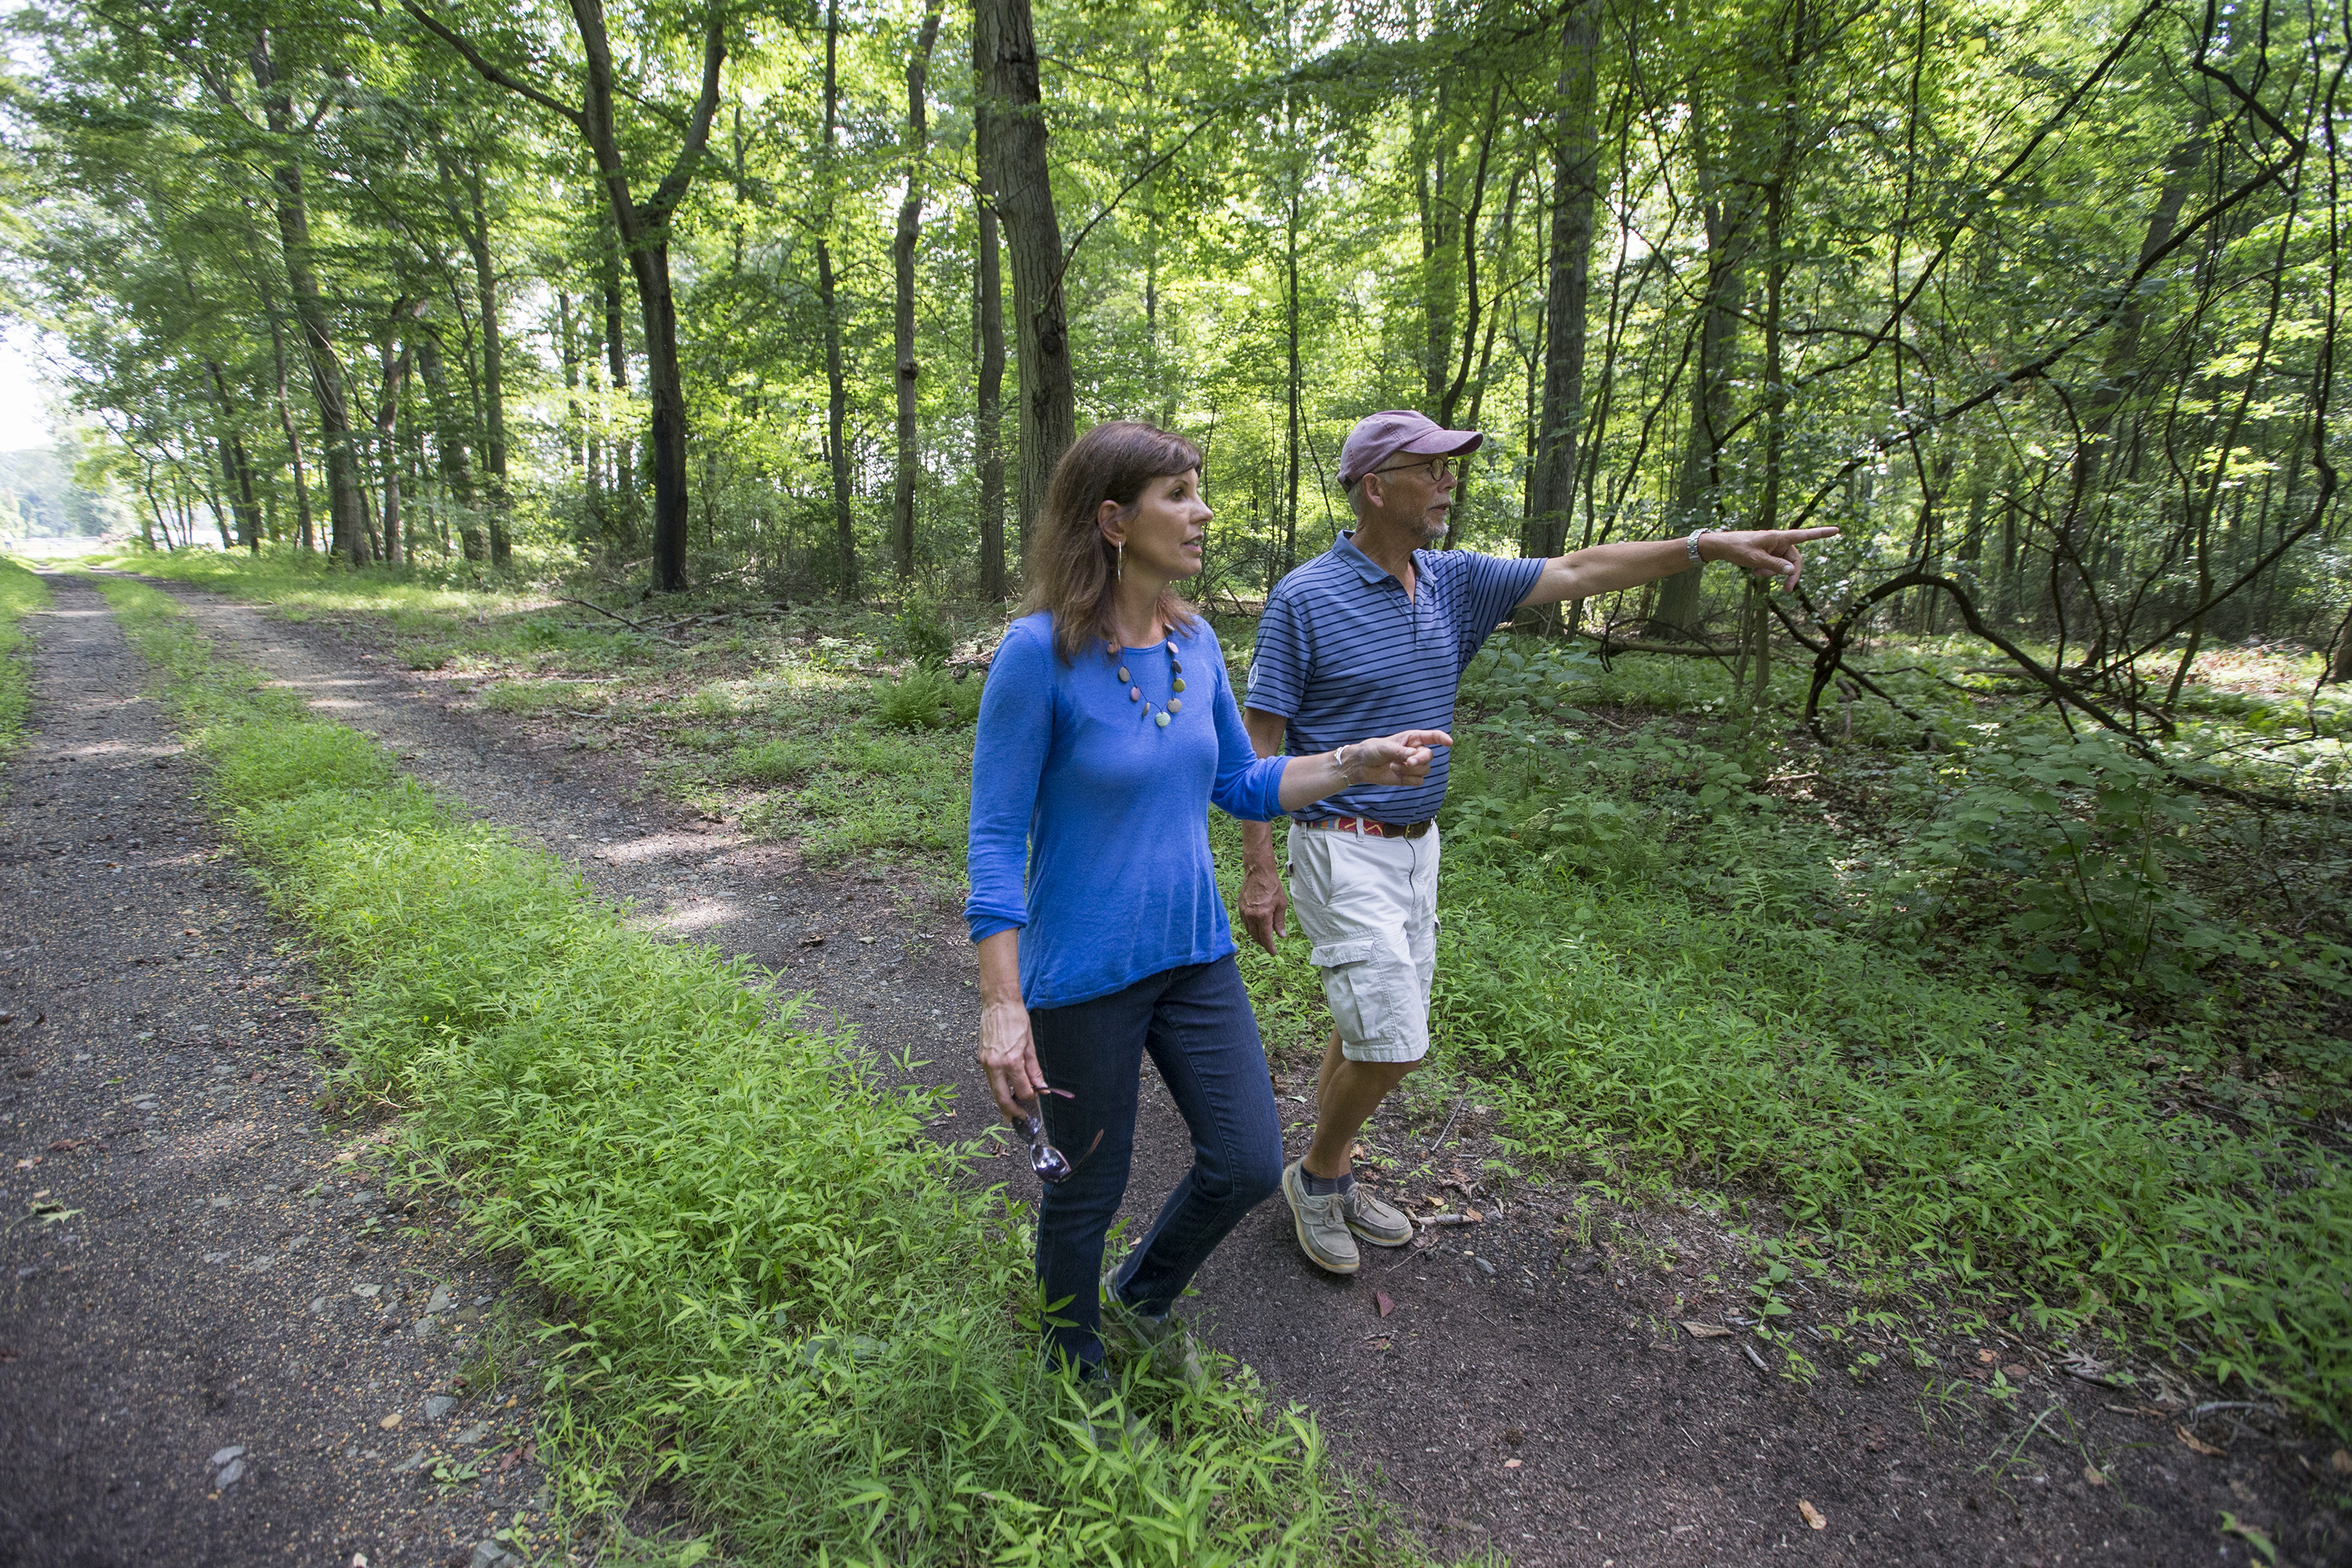 Chesterfield Township Councilwoman Rita Romeu, left, and environmentalist Glenn Ashton walk through a wooded area near the pipeline construction. In Chesterfield Township and Bordentown, a fight is brewing over a proposed natural gas pipeline that would connect the Burlington County township with Manchester Twp in Ocean County. Workers install the pipeline in Bordentown near the New Jersey Turnpike. CHARLES FOX / Staff Photographer